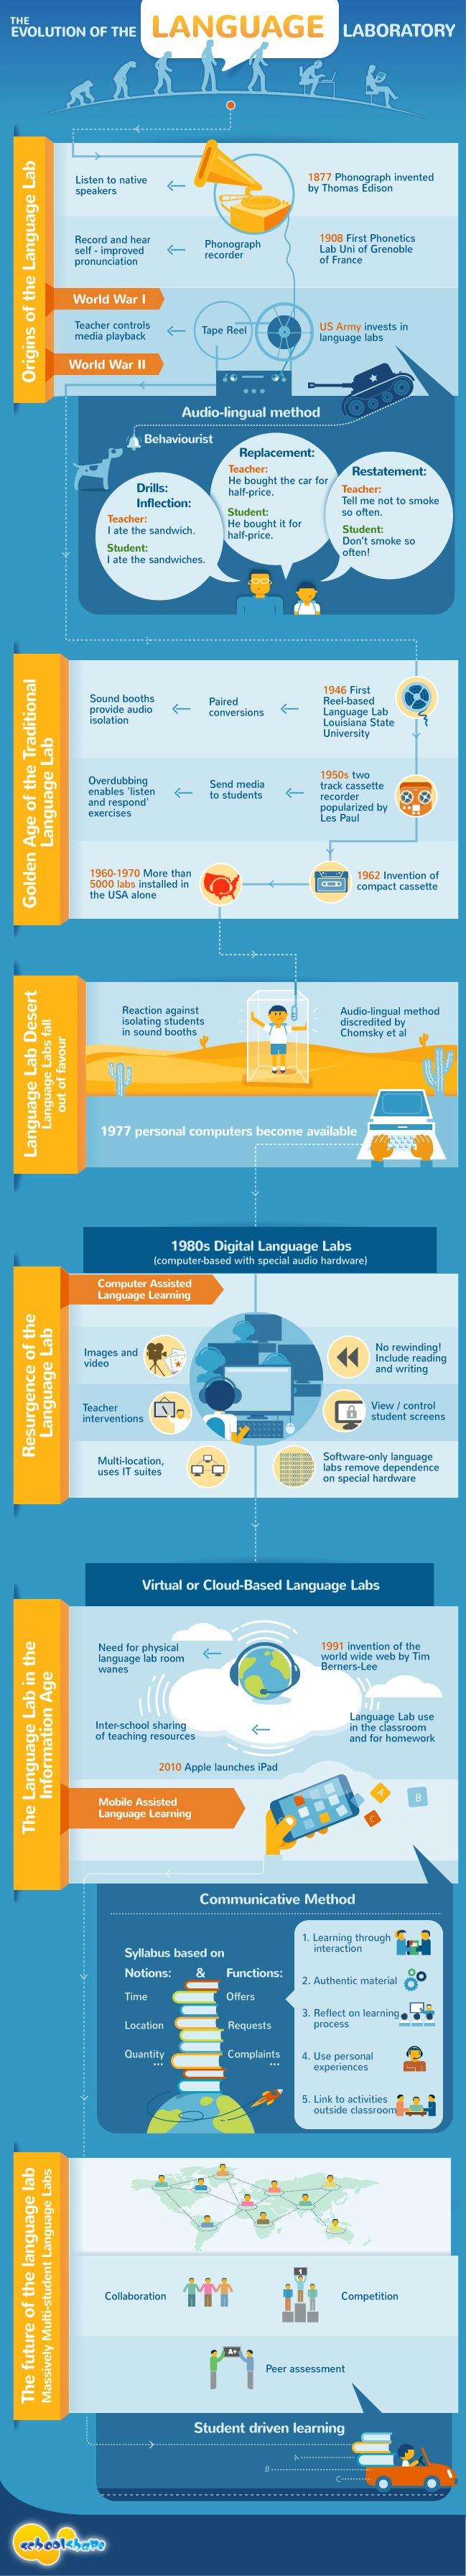 The History of the Language Laboratory Infographic